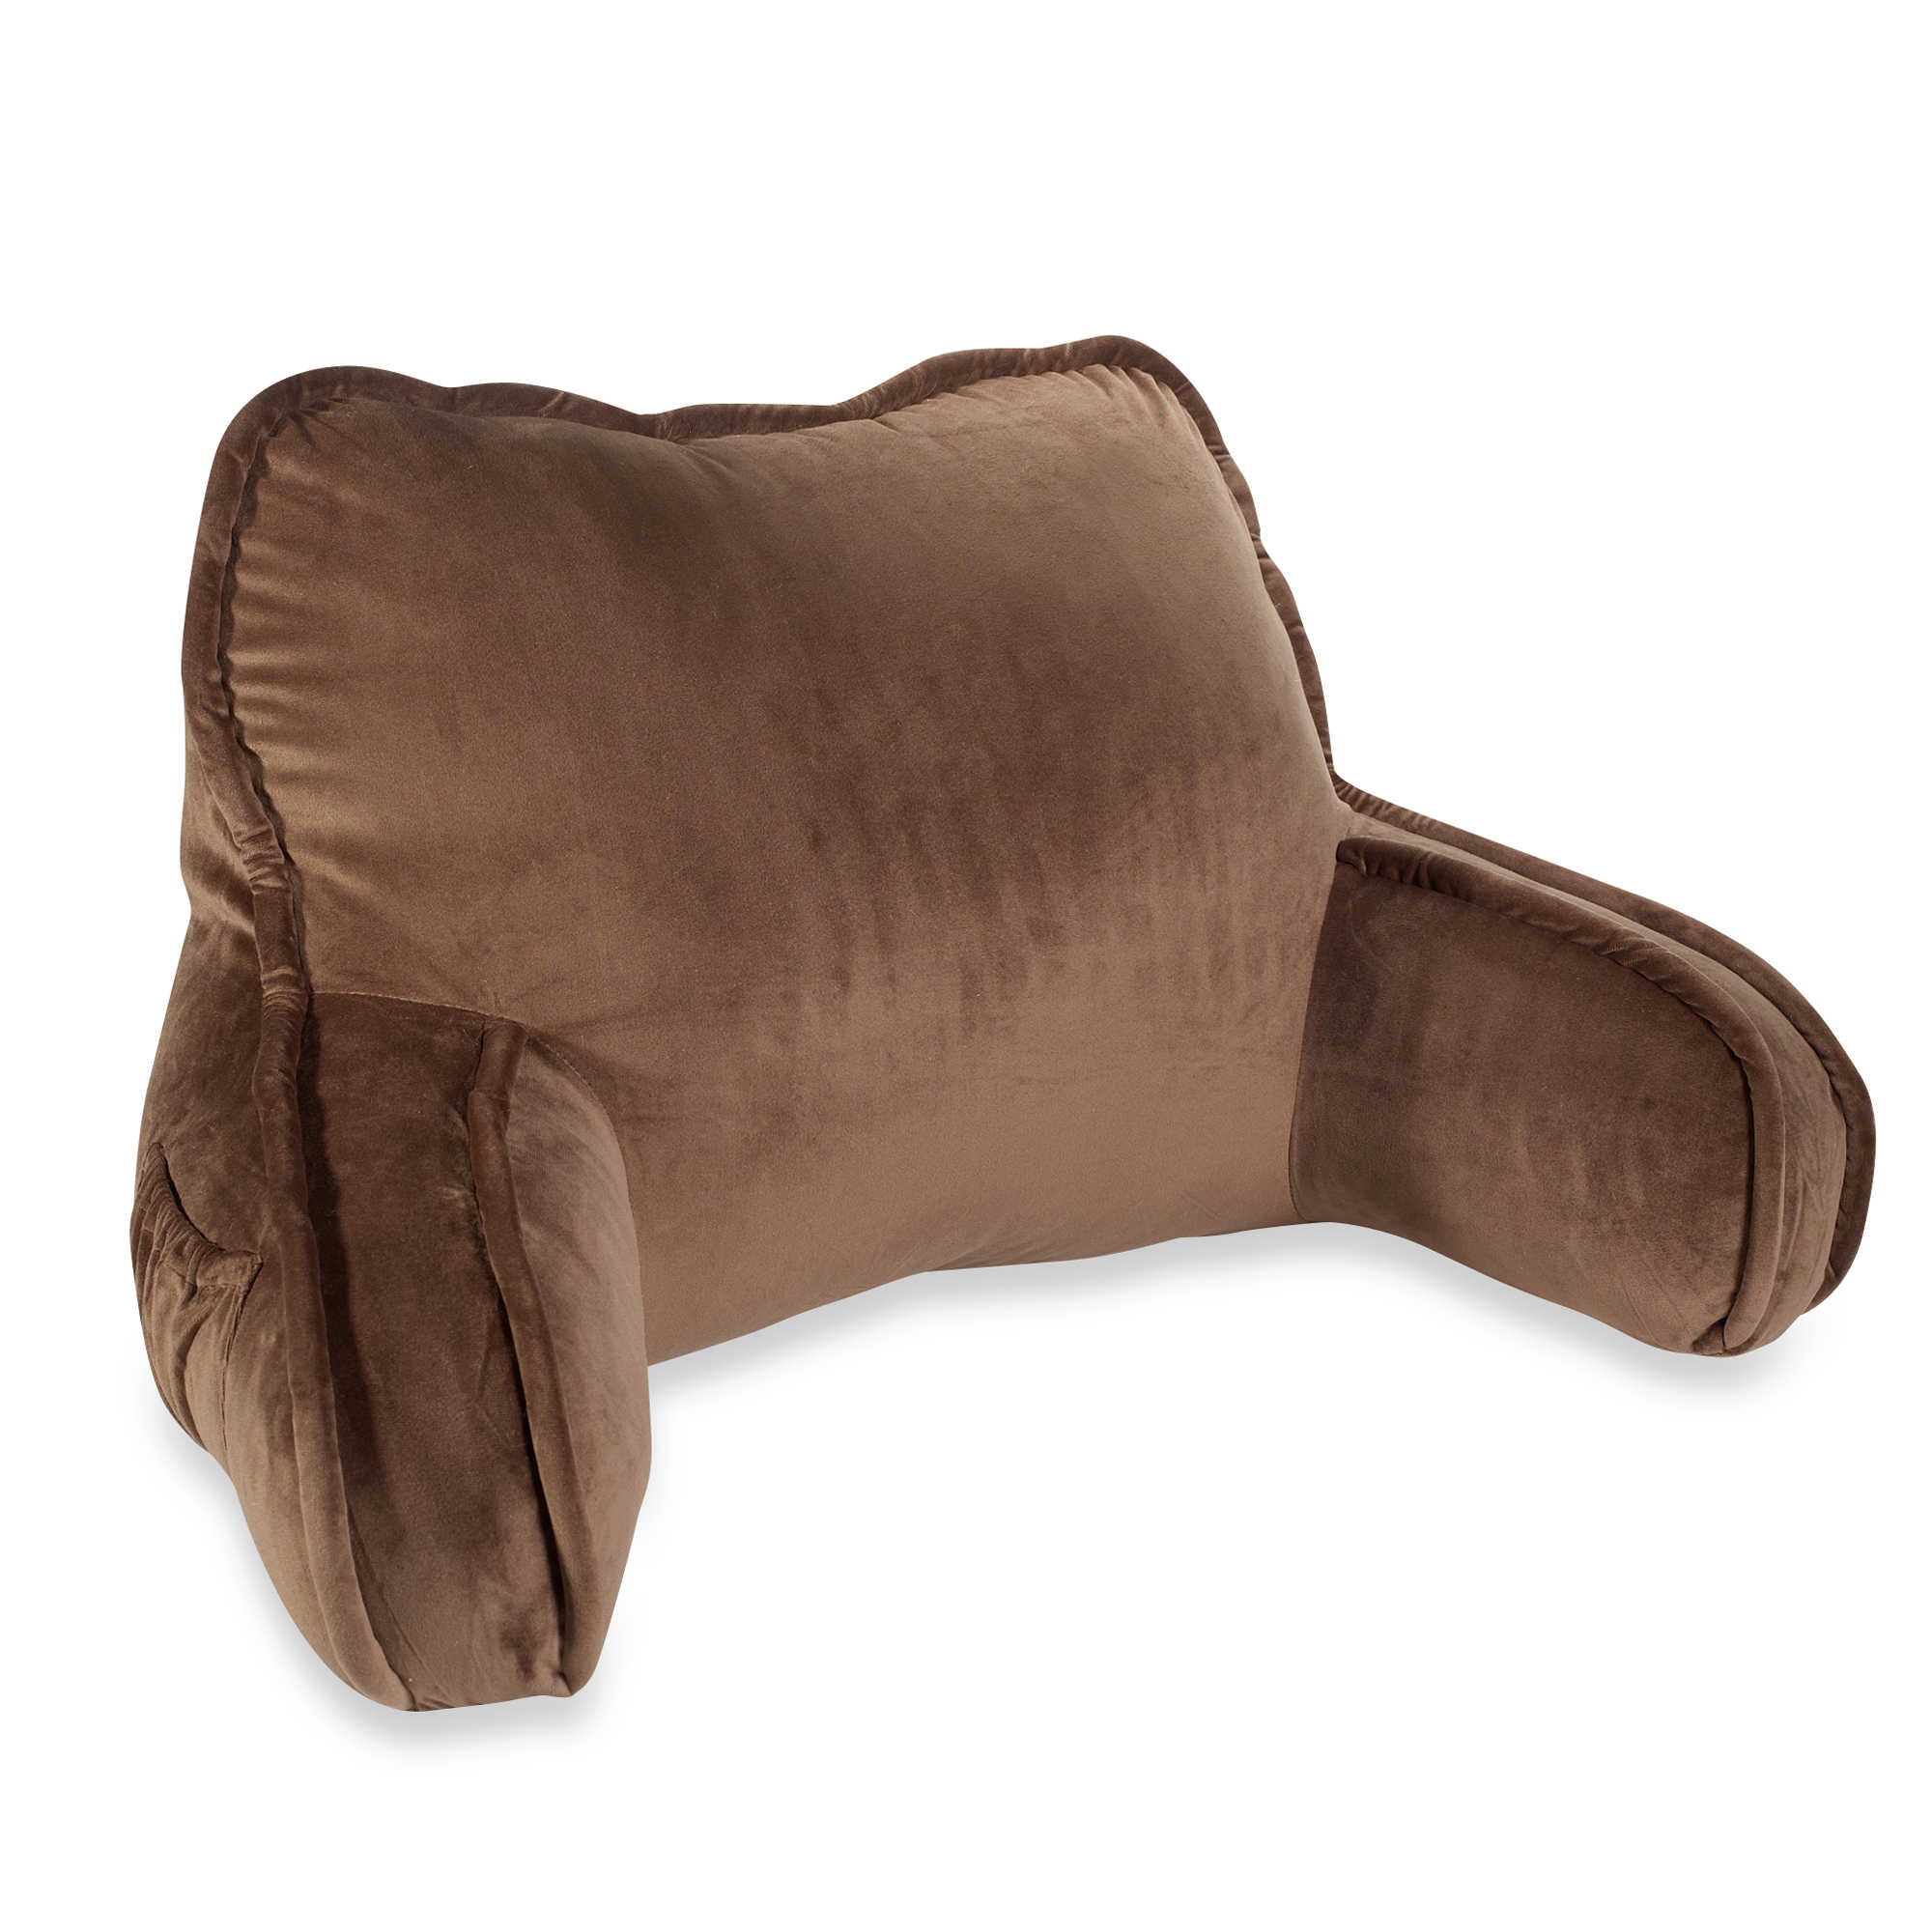 Pillow Cushion Use Bed Sit